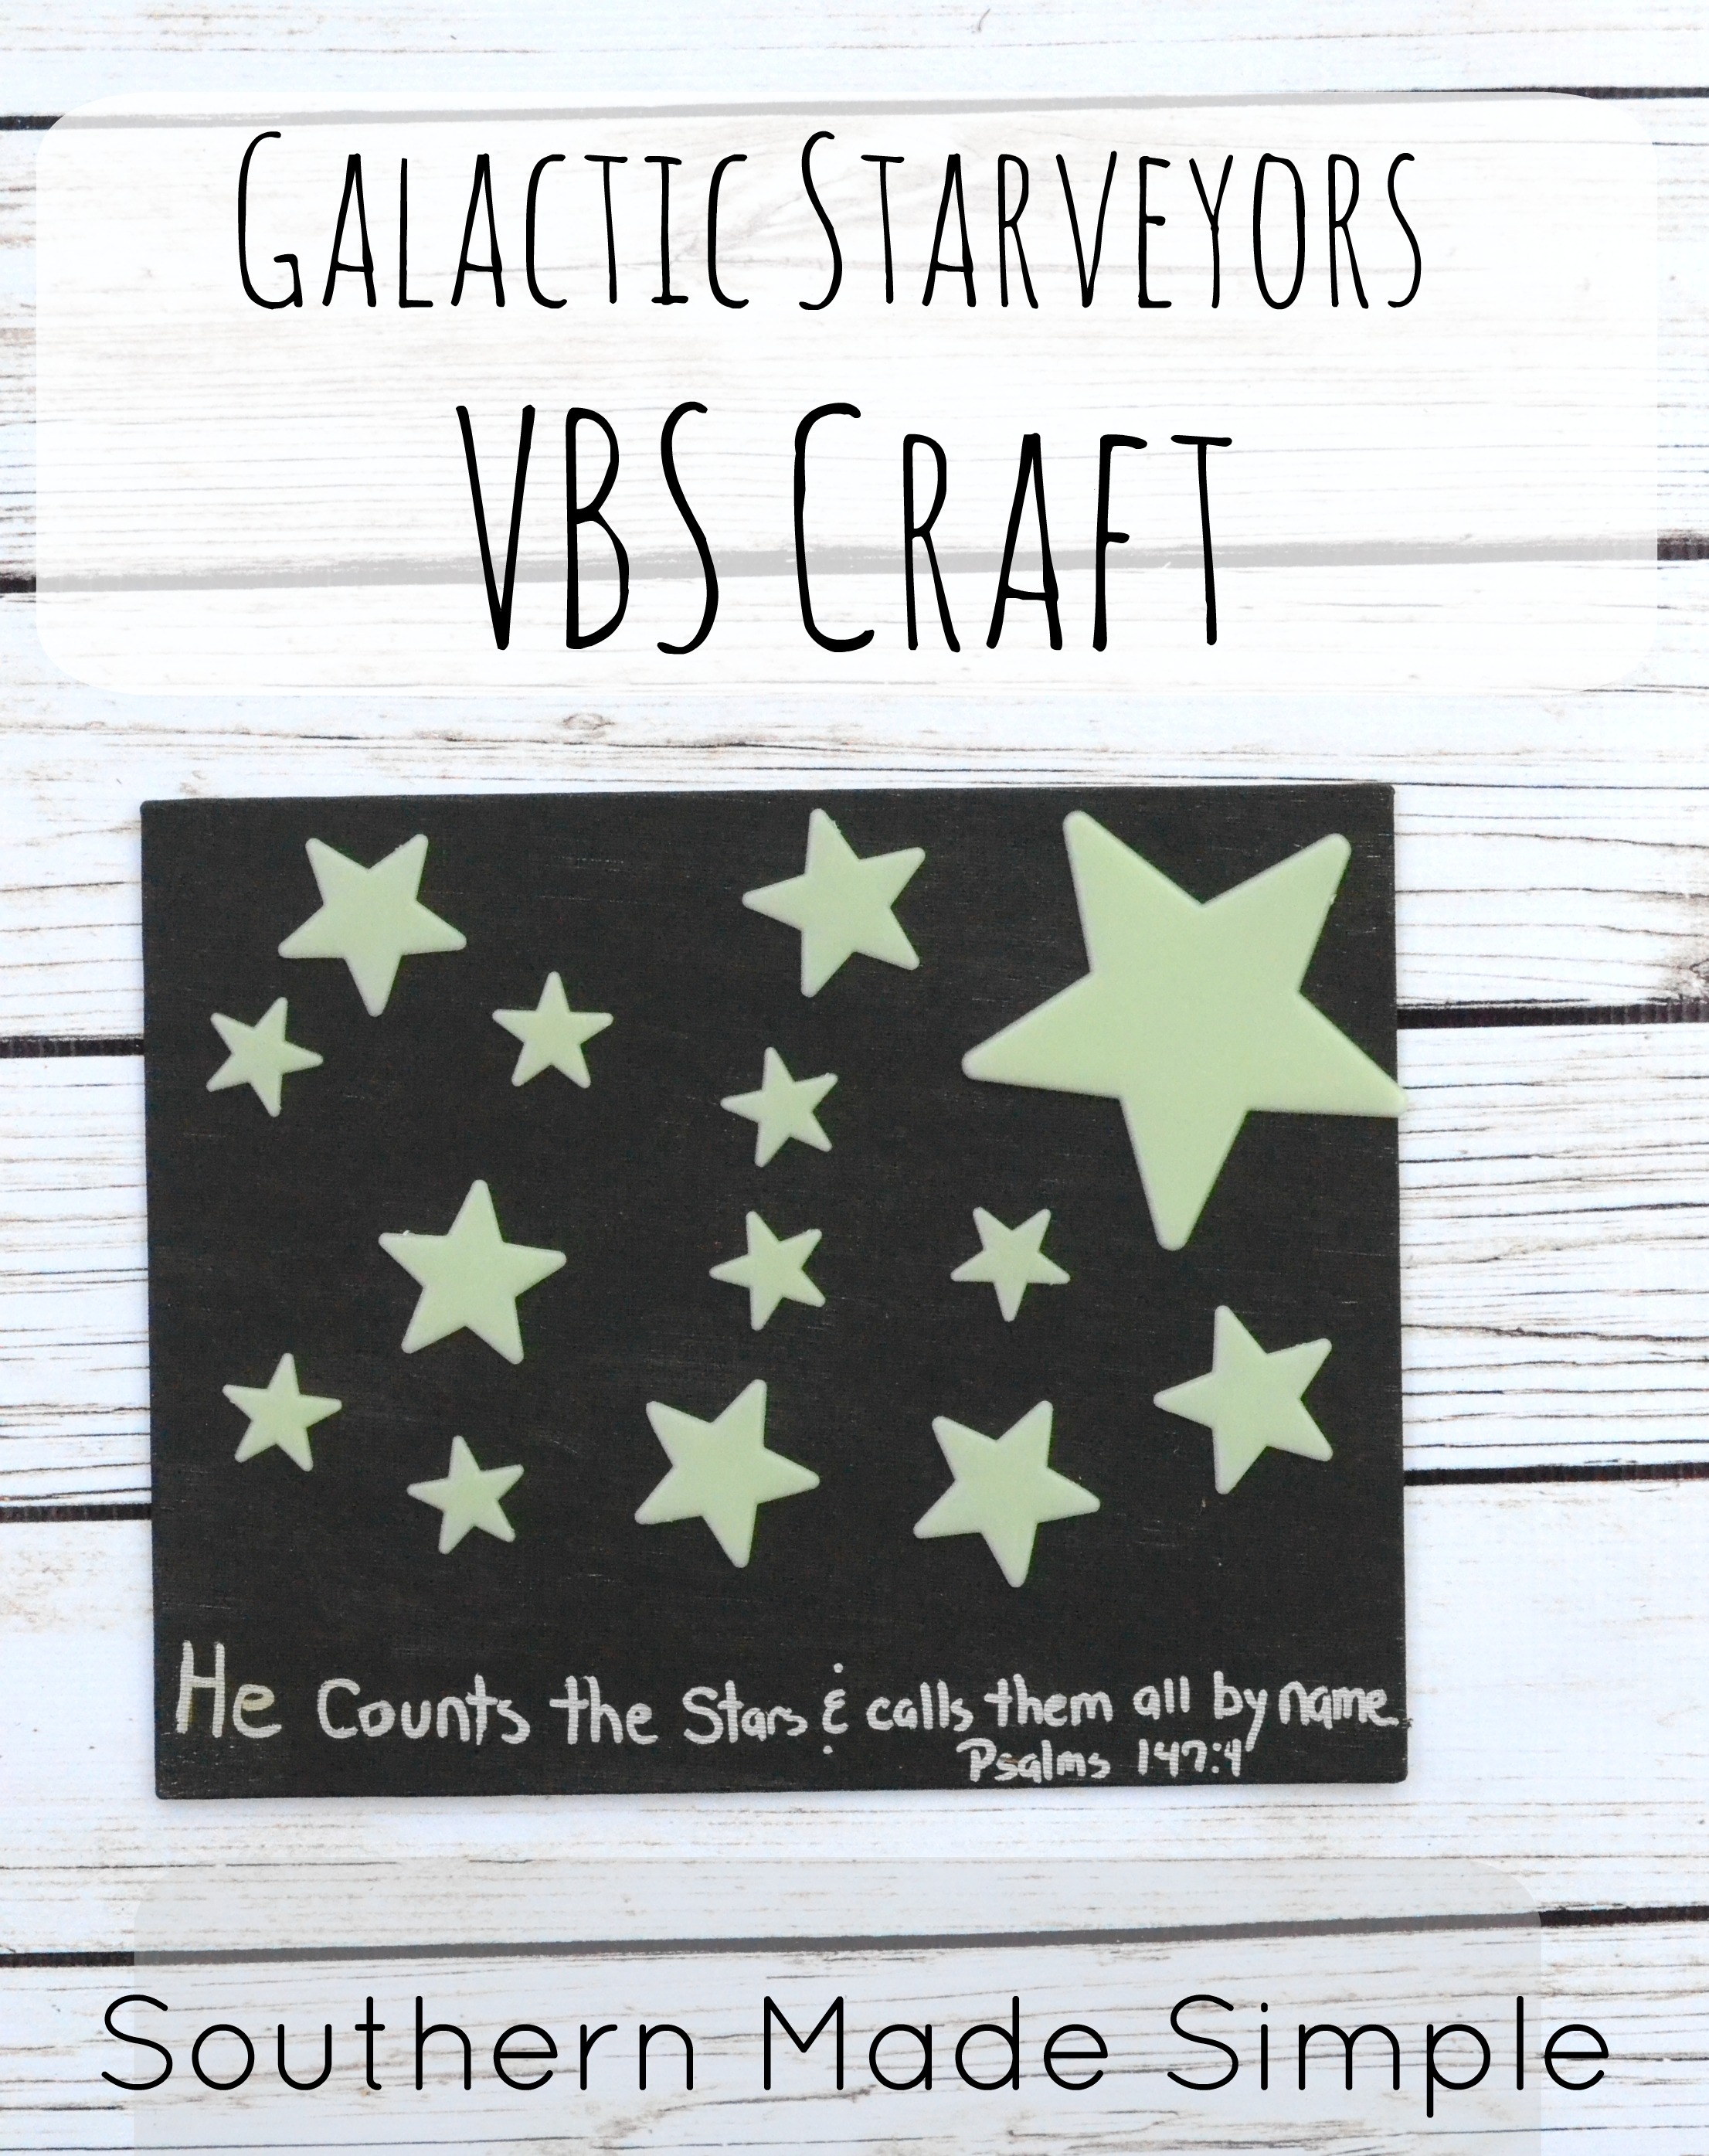 Easy Galactic Starveyors Craft Idea